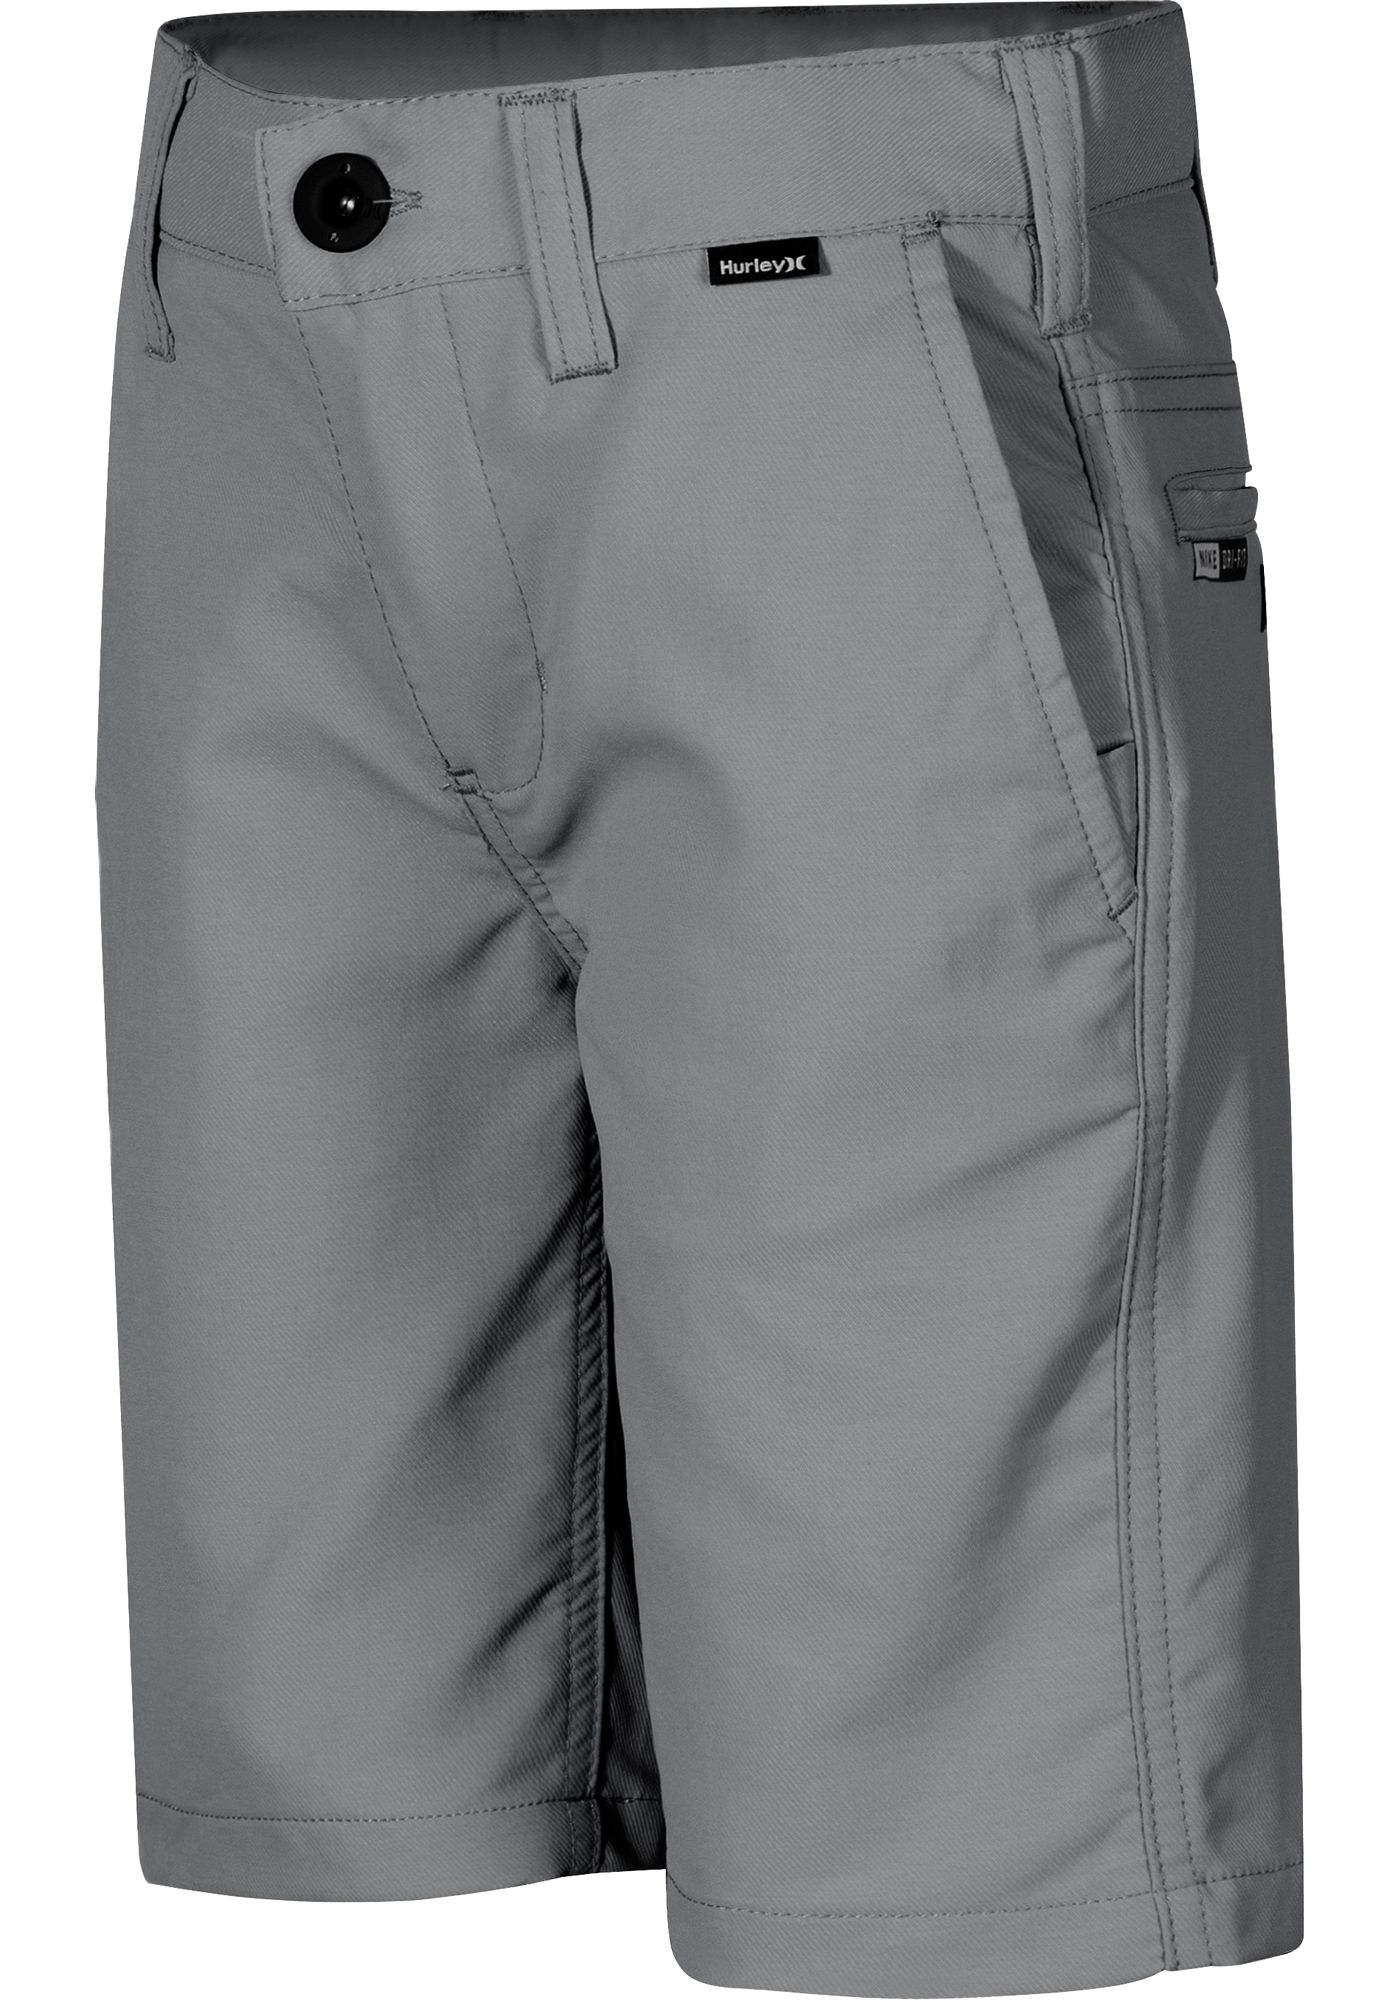 Hurley Boys' Dri-FIT Chino Walk Shorts